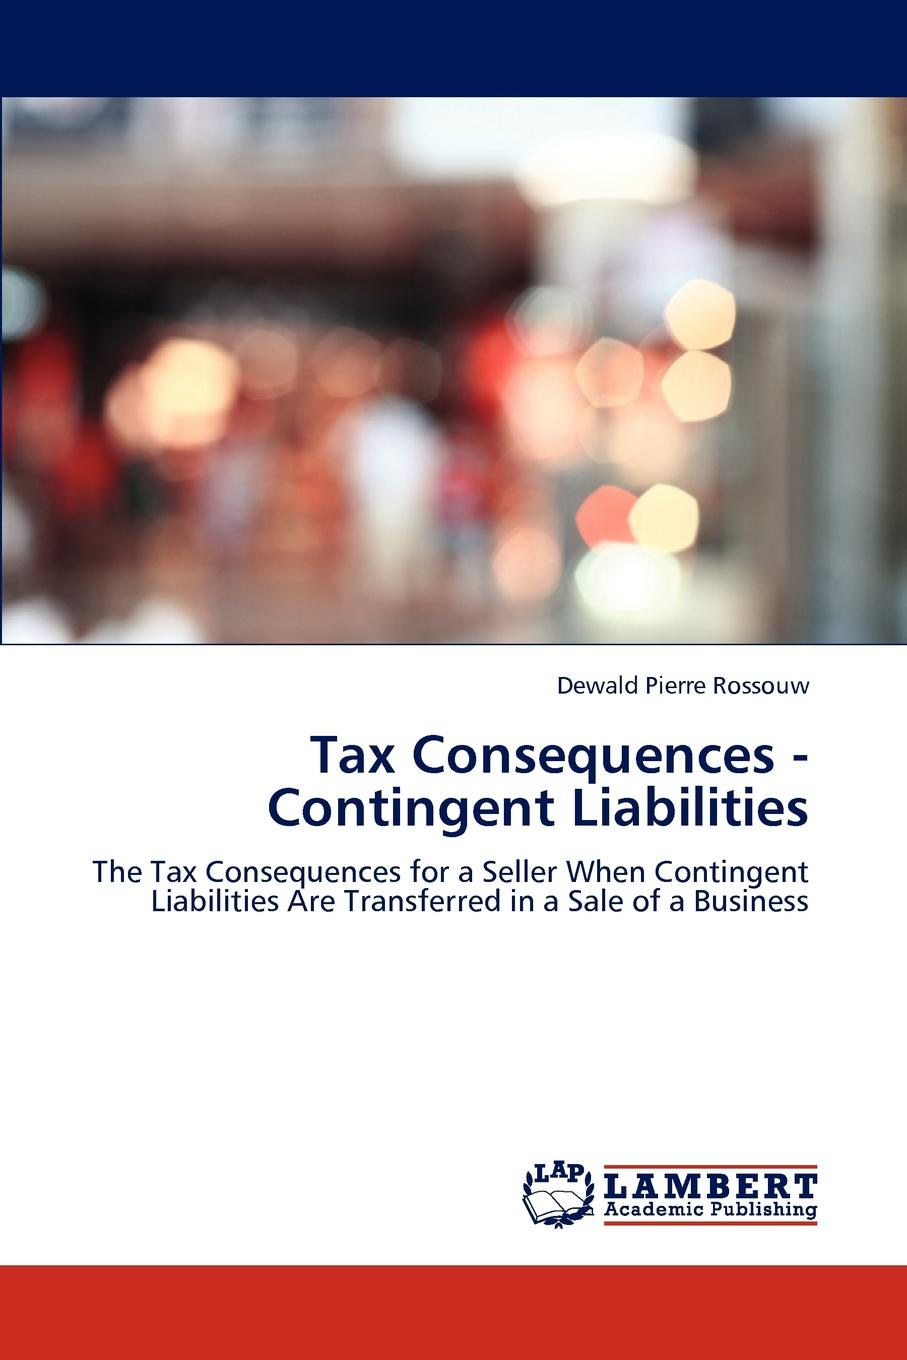 Dewald Pierre Rossouw Tax Consequences - Contingent Liabilities free shipping kayipht cm400ha1 24h can directly buy or contact the seller